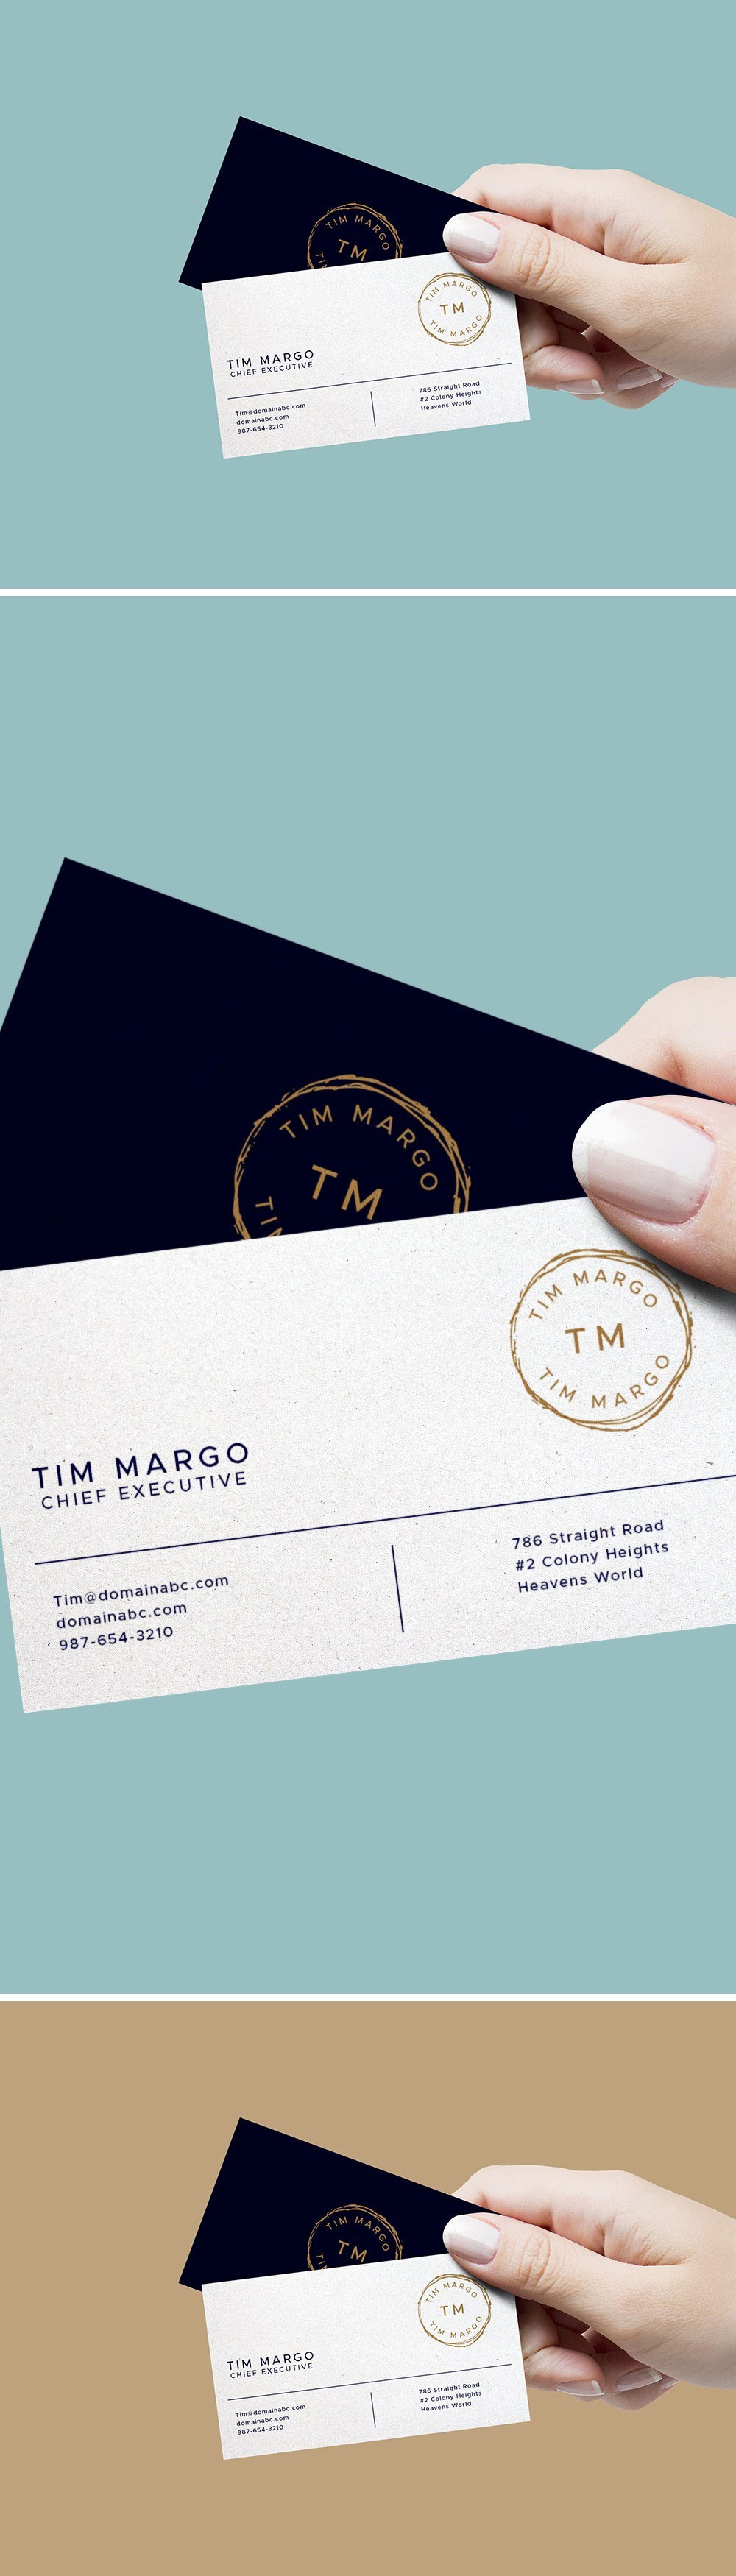 Hand Holding Business Cards Mockup